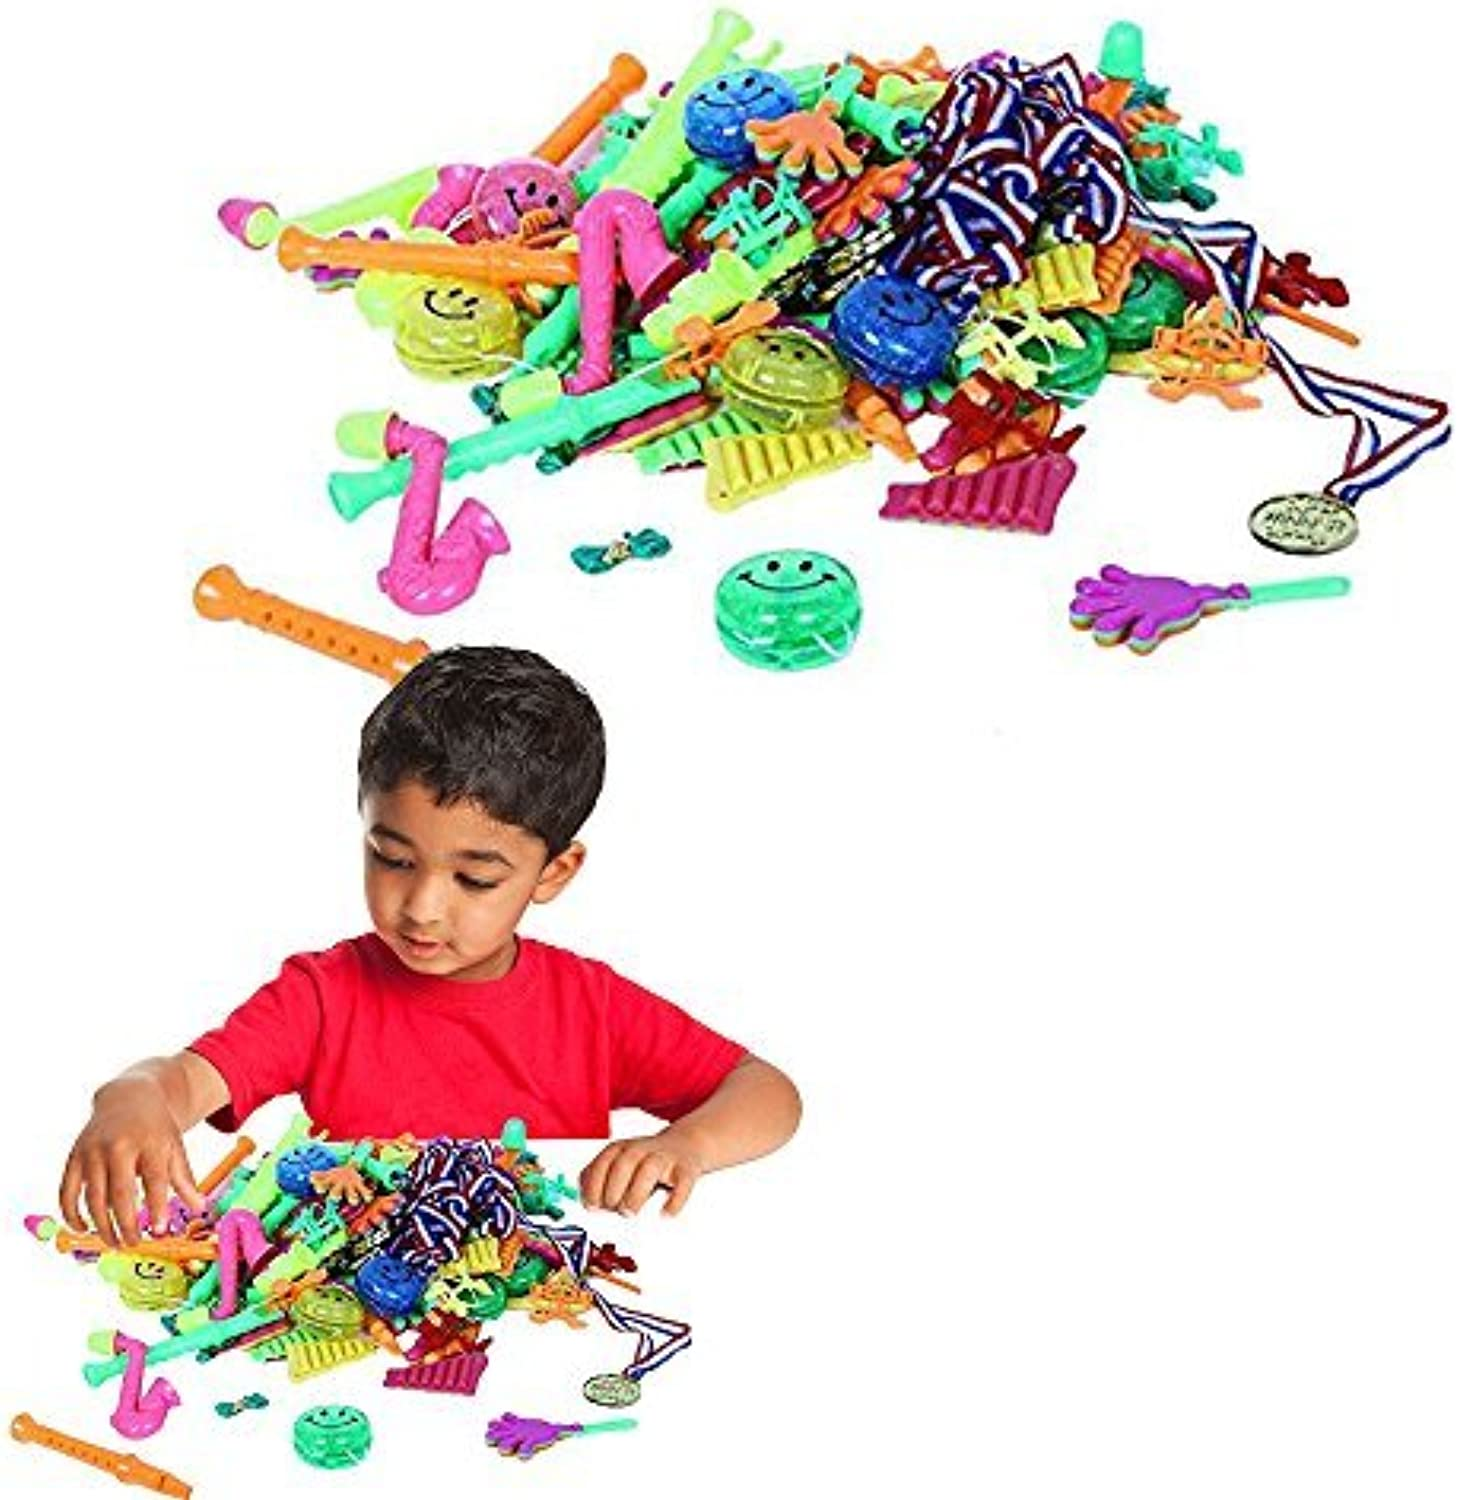 Toy Cubby Party Supply 96 Assorted Party Favors Toy Goodies Set by Toy Cubby